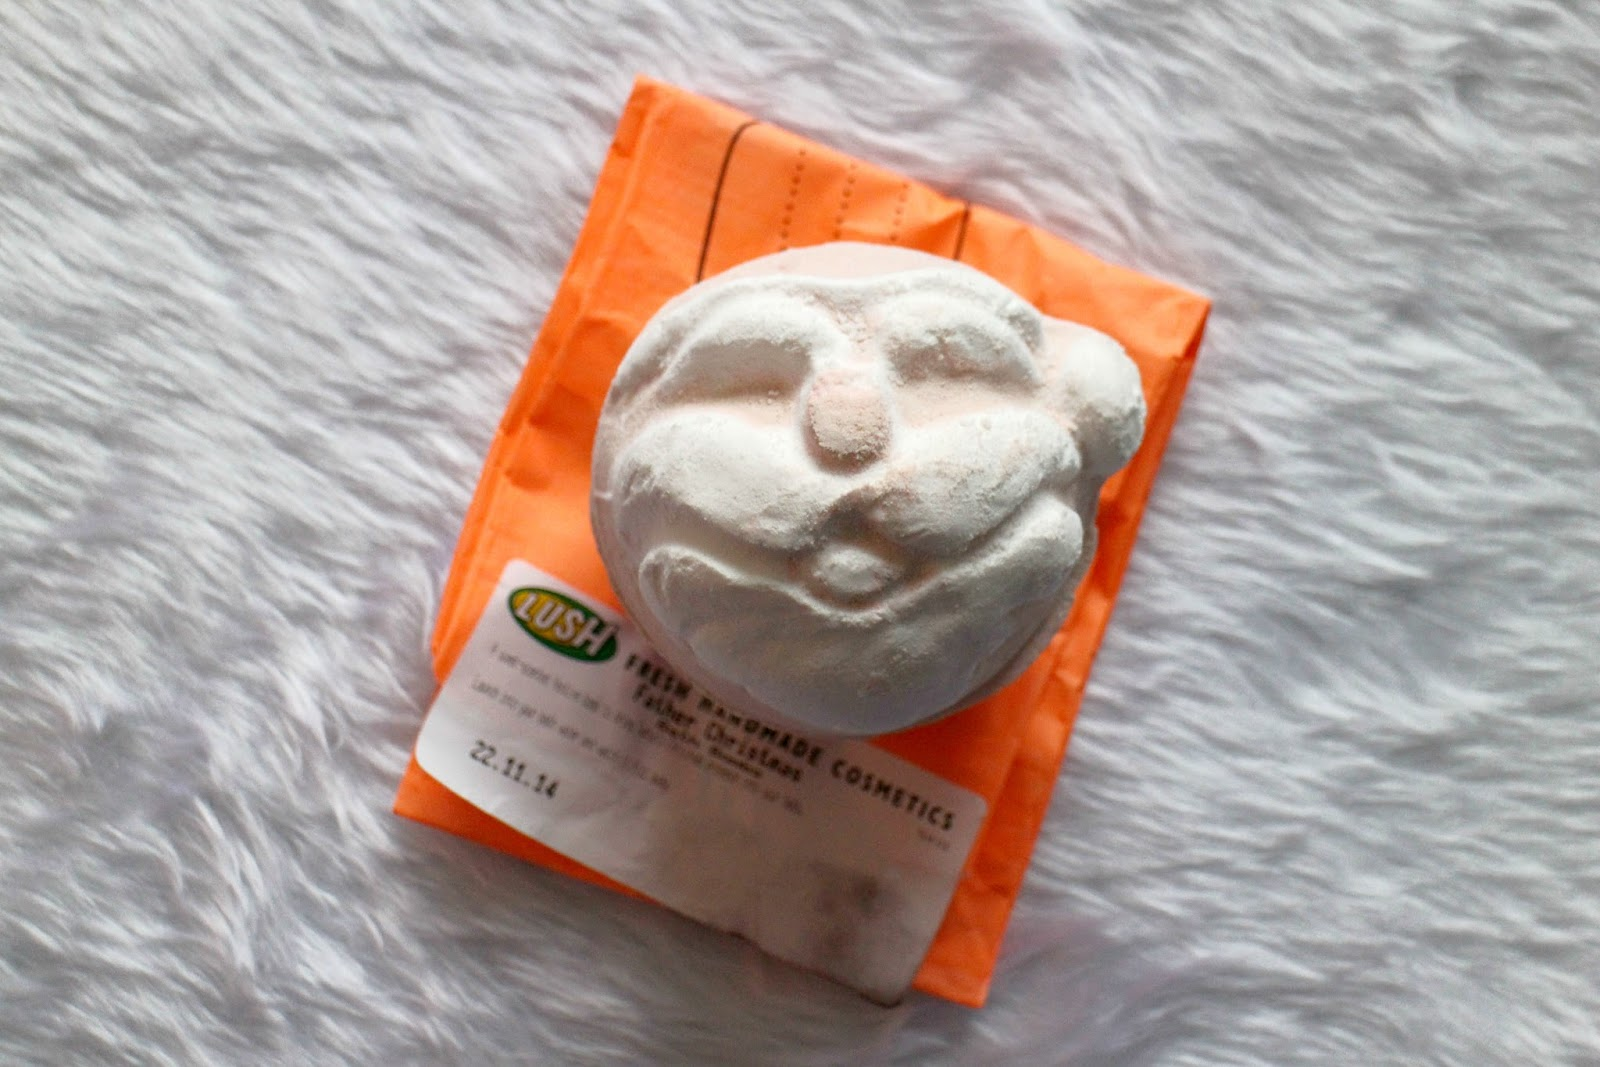 Lush Father Christmas Bath Bomb Review